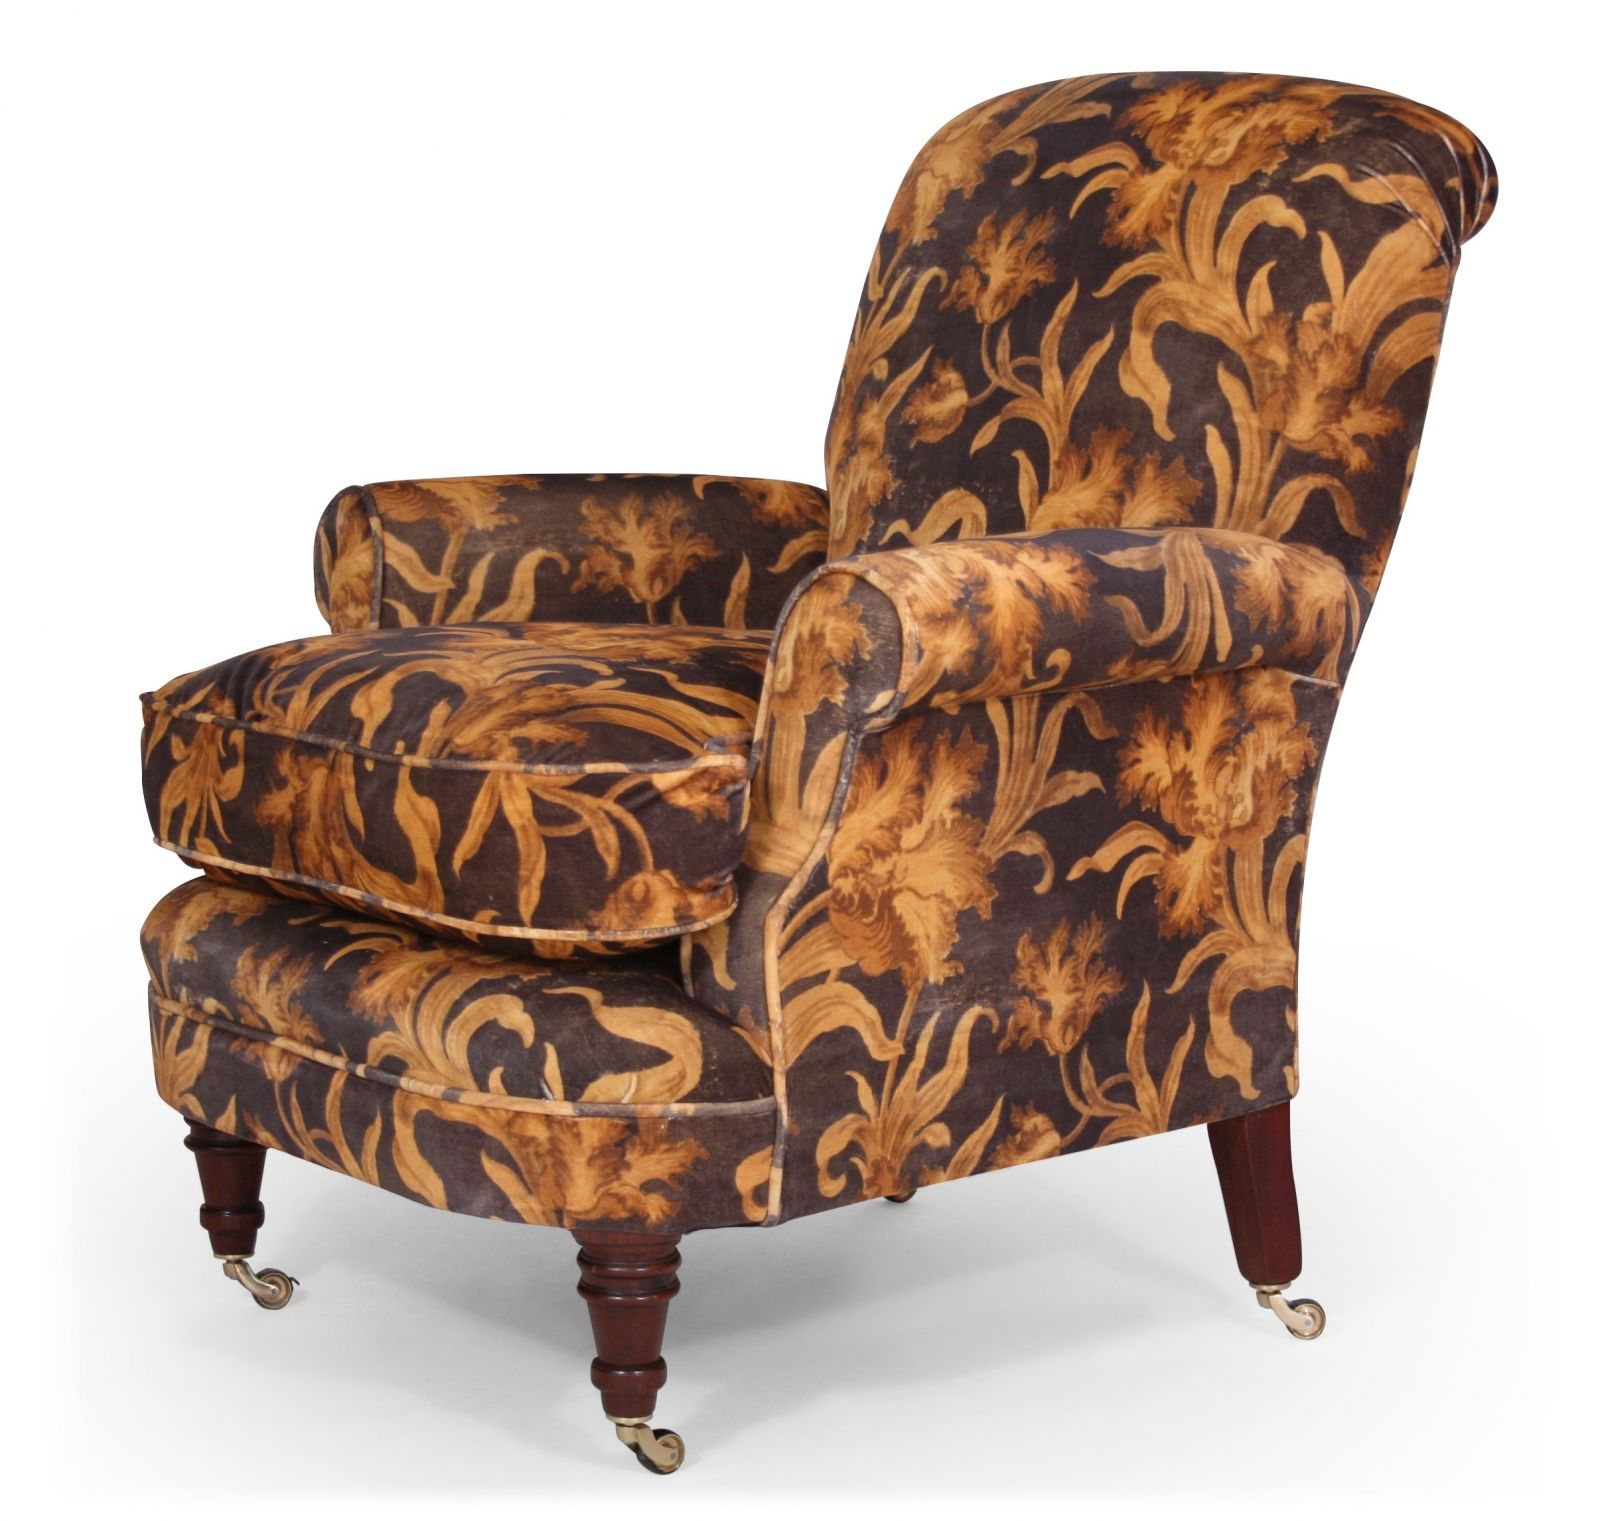 Shelley bedroom chair in Linwood Larnaca velvet